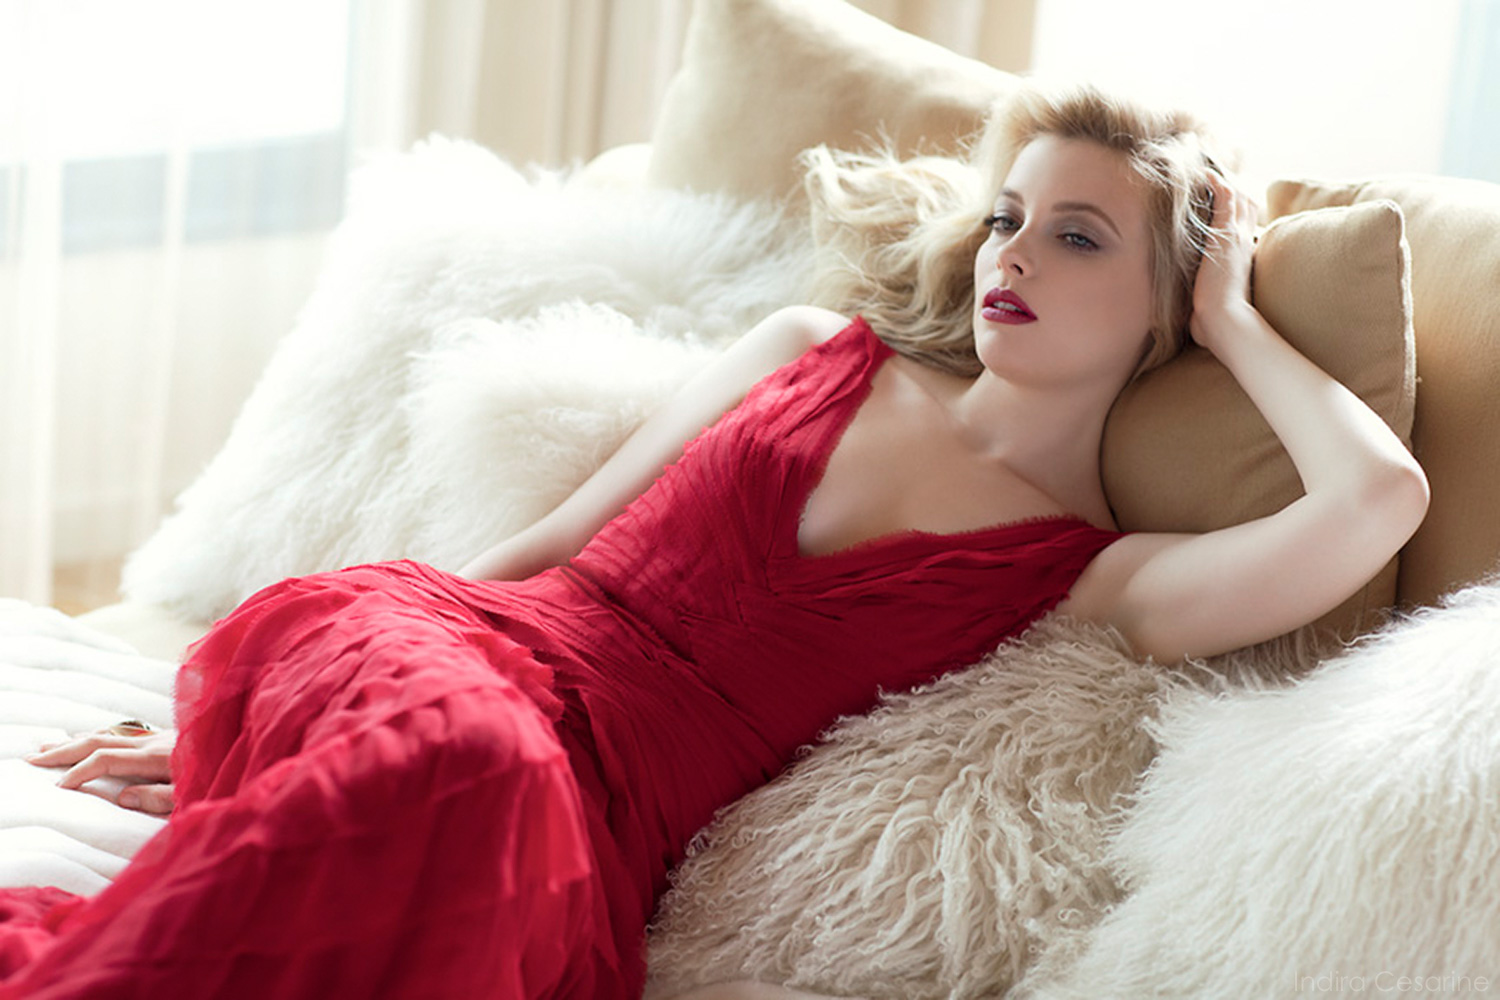 Gillian-Jacobs-Photography-by-Indira-Cesarine-001.jpg